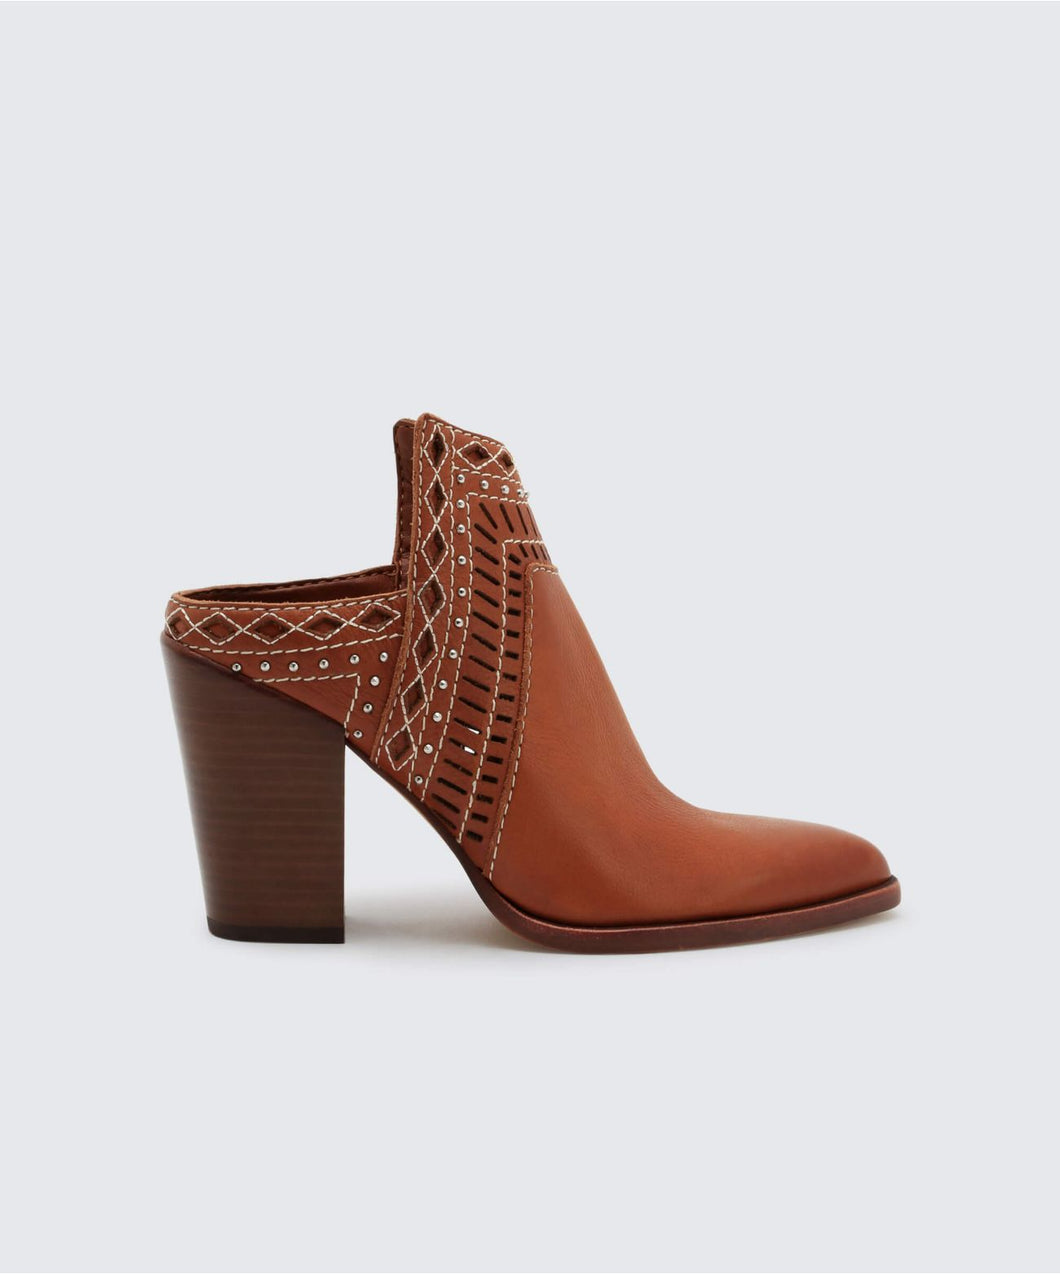 KHIA BOOTIES IN BROWN -   Dolce Vita